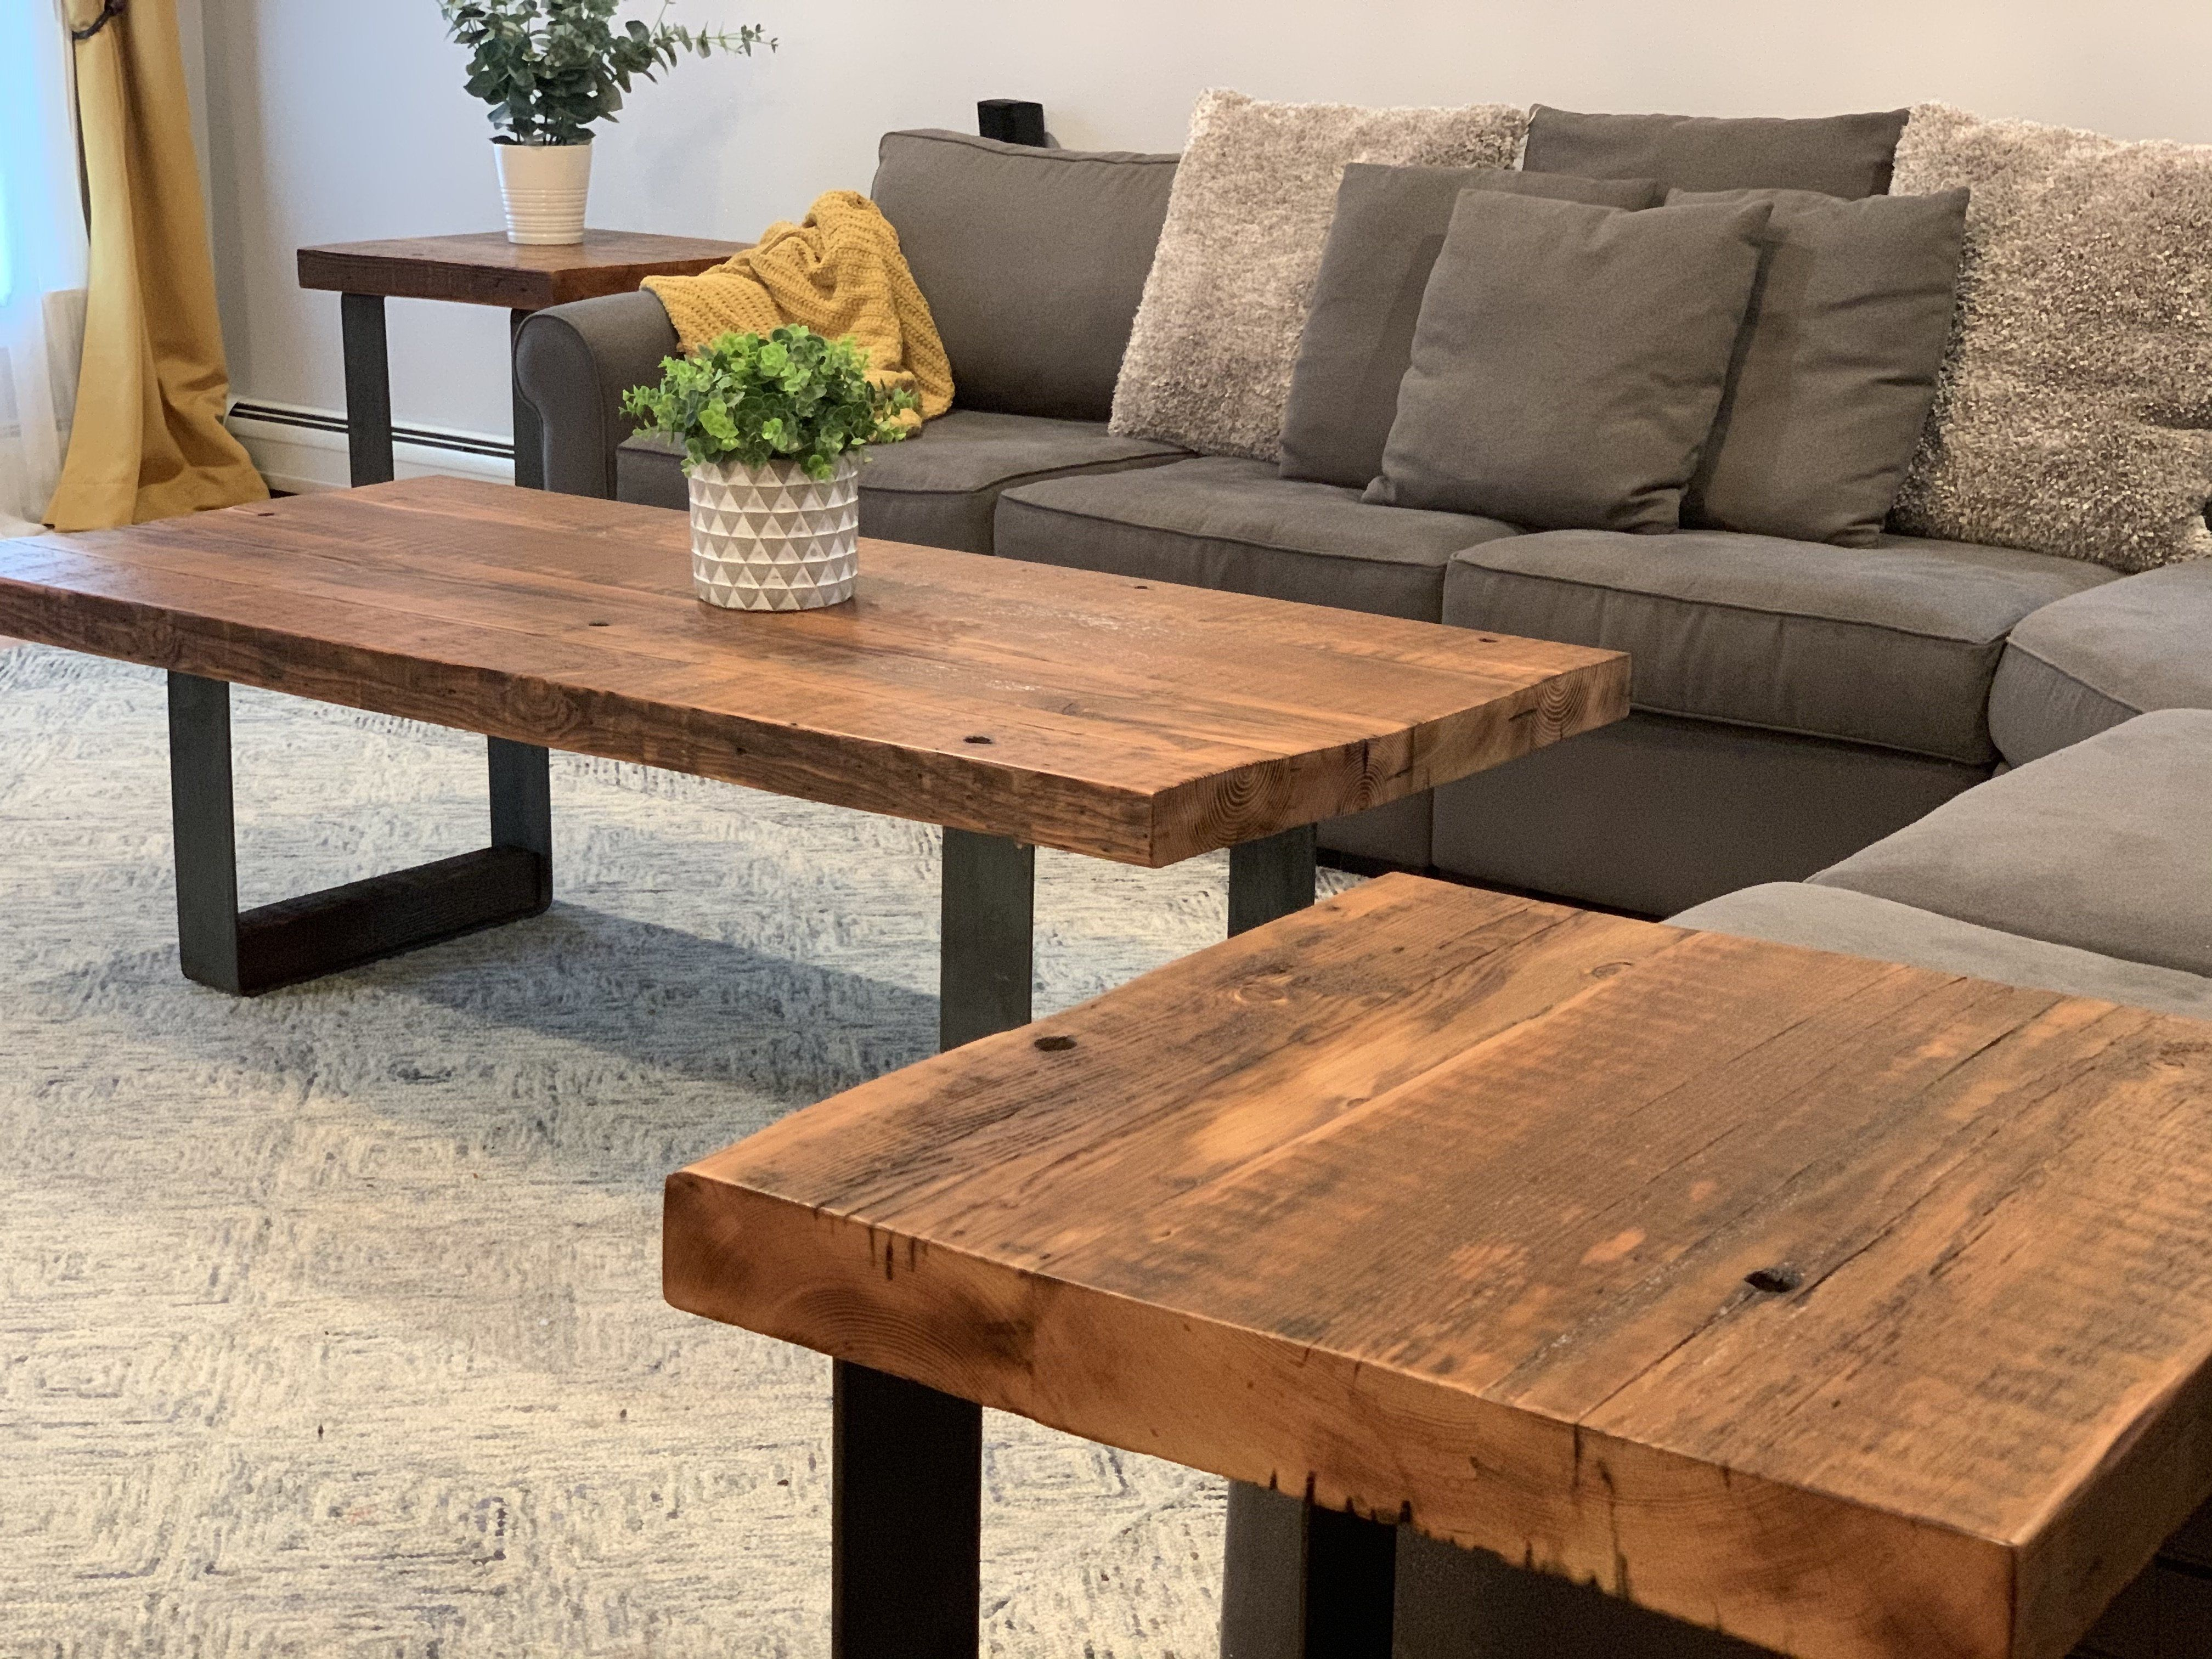 Reclaimed Wood Coffee Table Set With Raw Steel Legs Reclaimed Wood Coffee Table Raw Wood Coffee Table Wood Coffe Table [ 3024 x 4032 Pixel ]